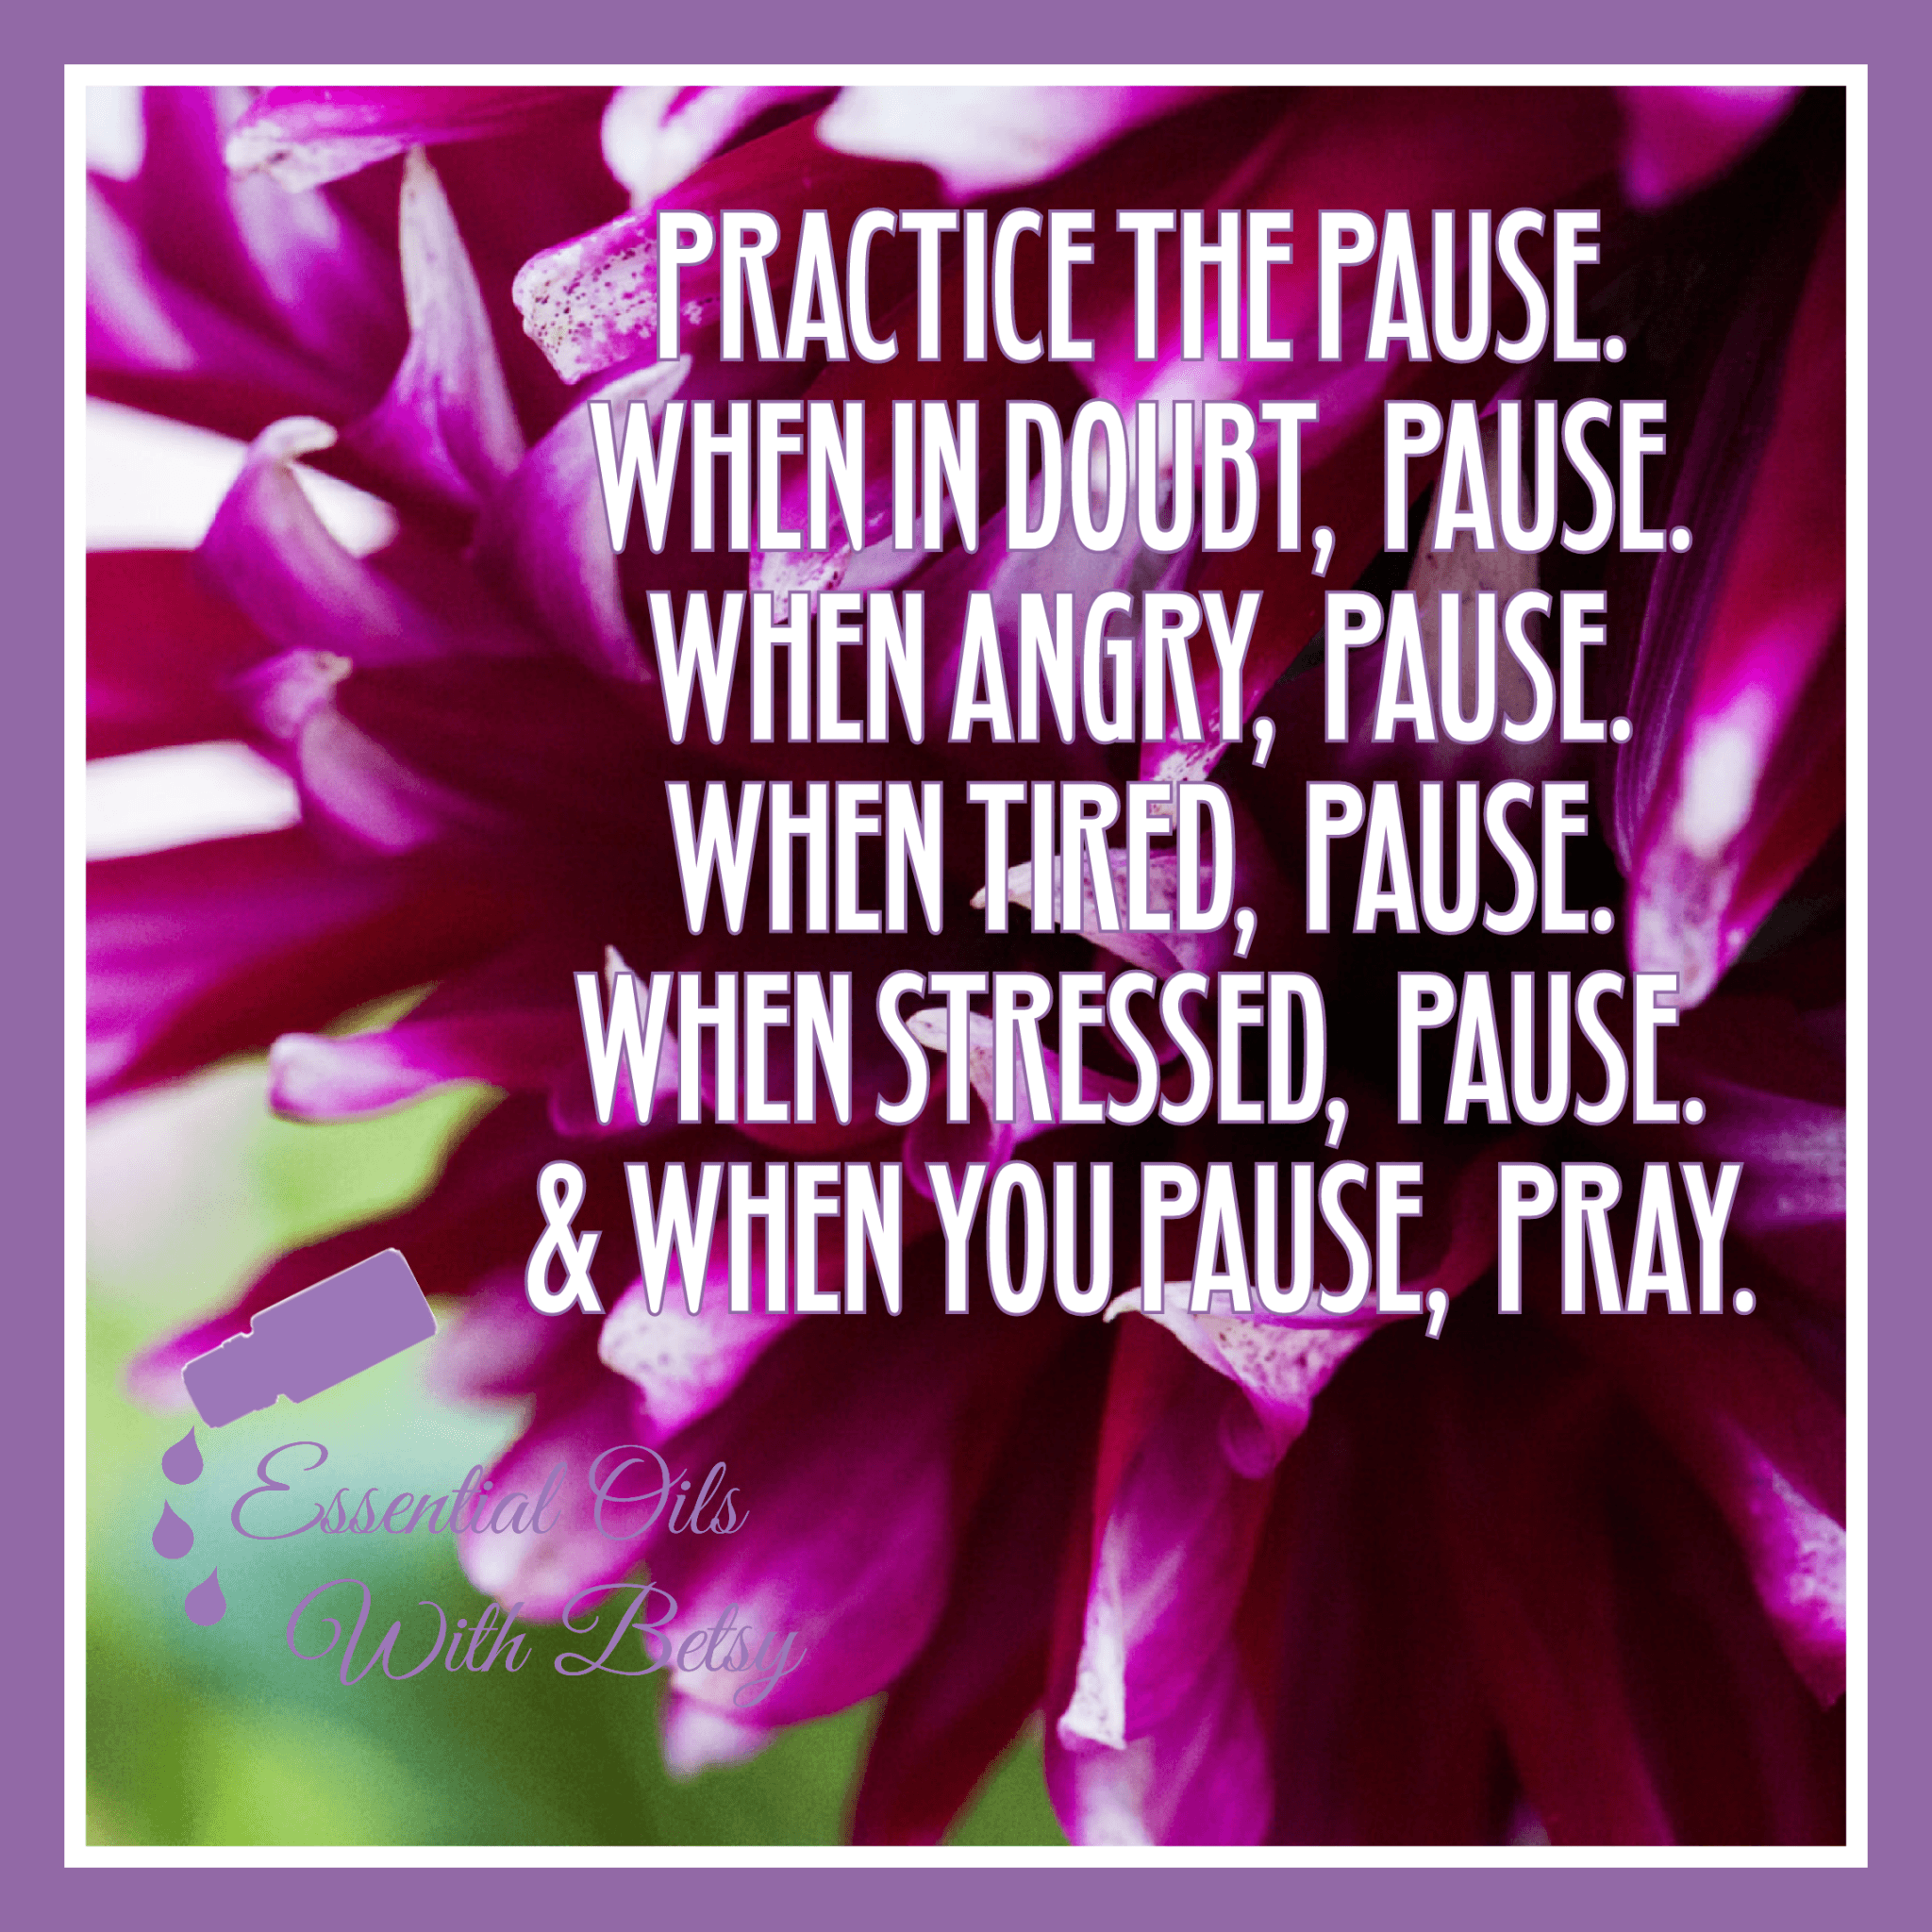 Practice the pause.